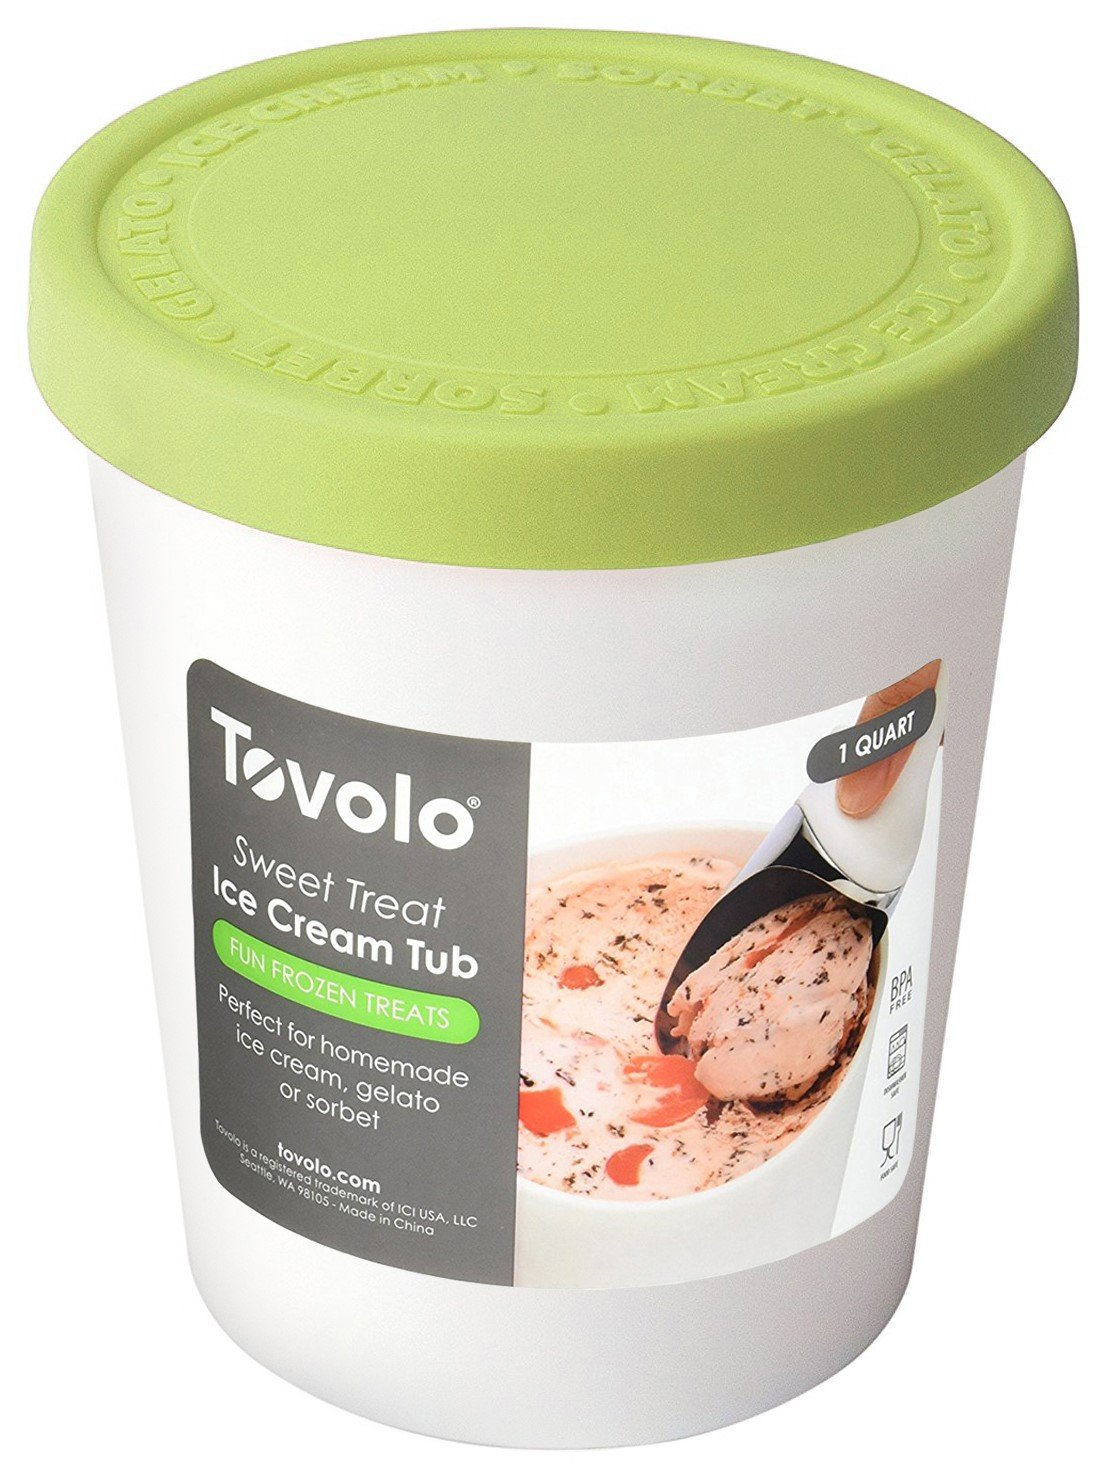 Tovolo Tight-Fitting, Stack-Friendly, Sweet Treat Ice Cream Tub, Pistachio by Tovolo (Image #3)